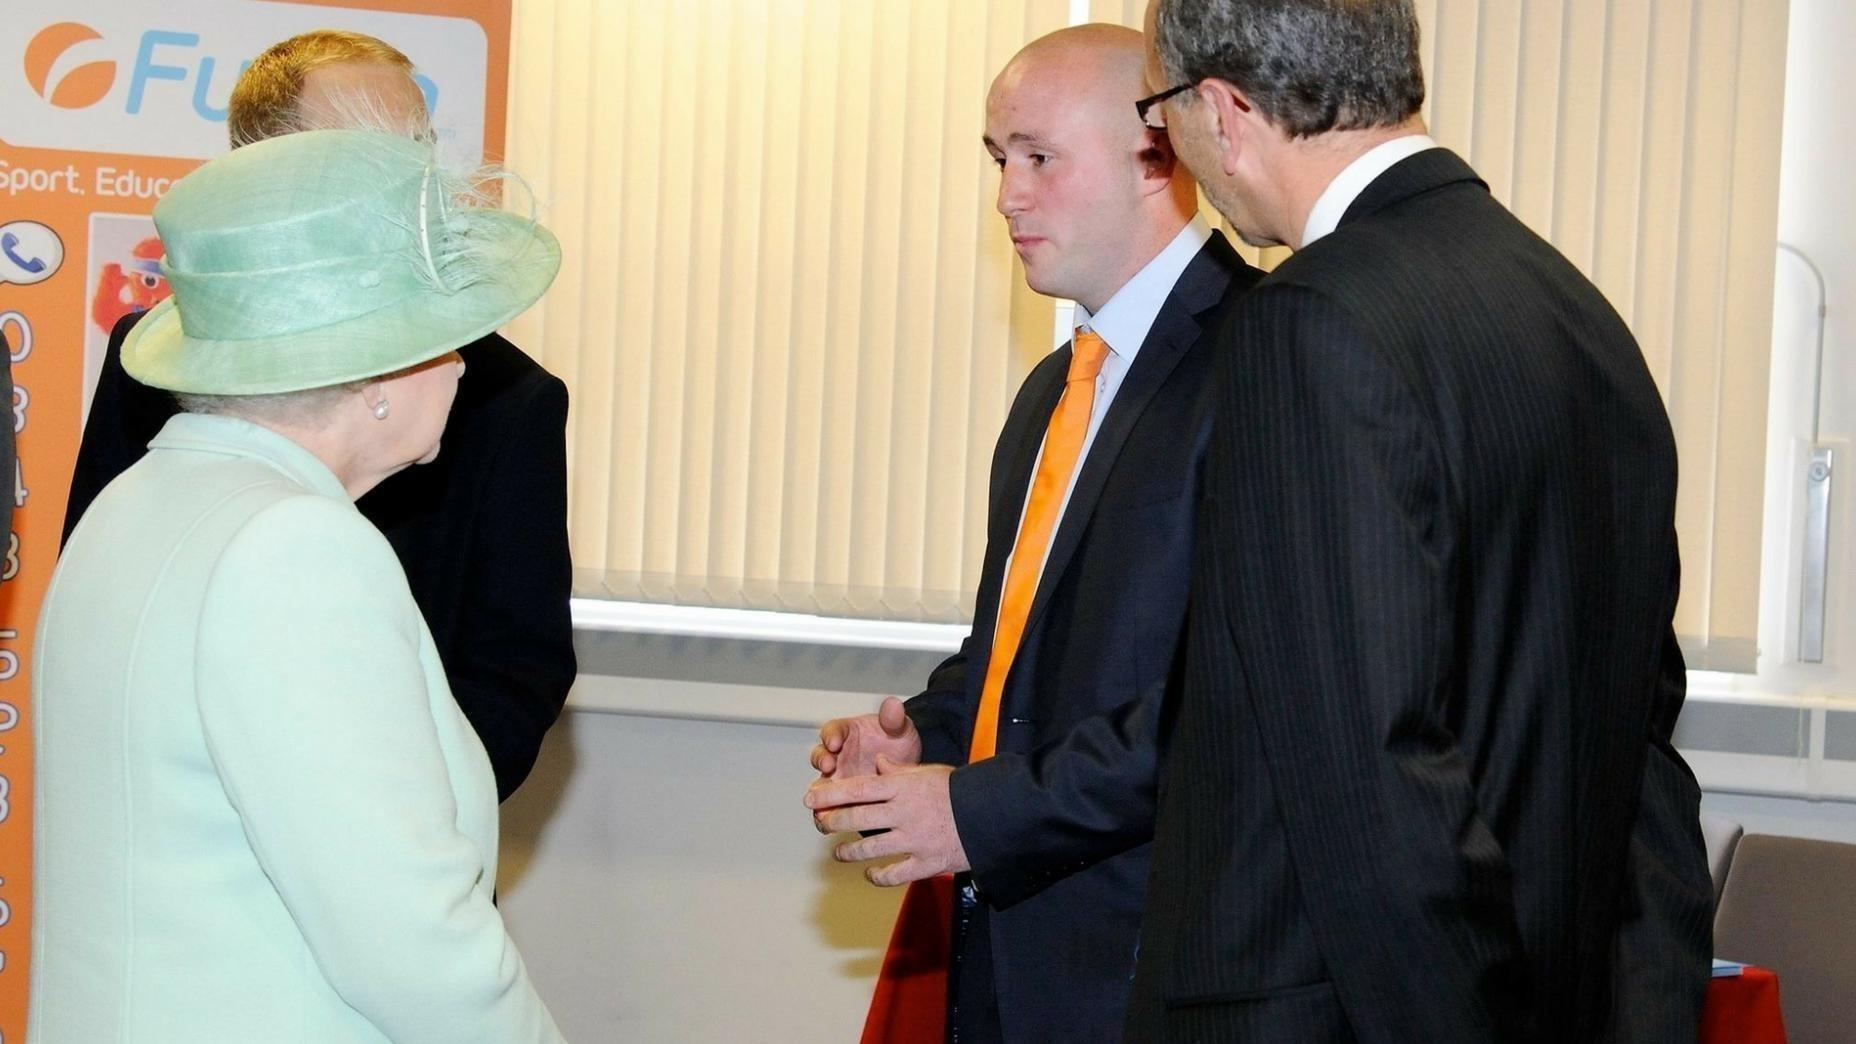 Kieran Meets Her Majesty The Queen